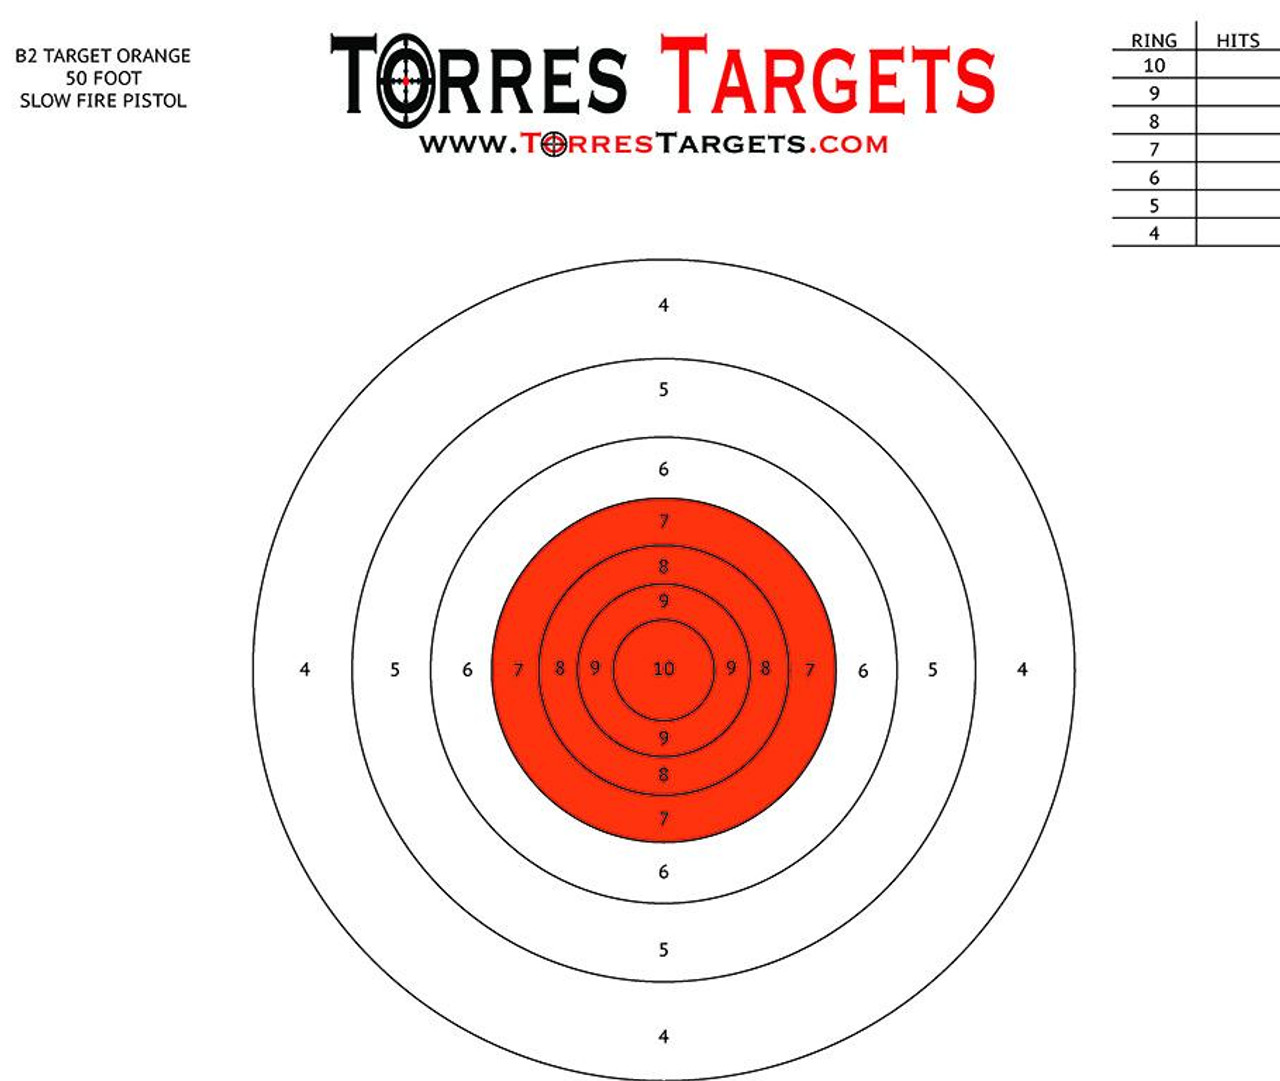 photograph about Nra B-8 Target Printable titled B2 focus